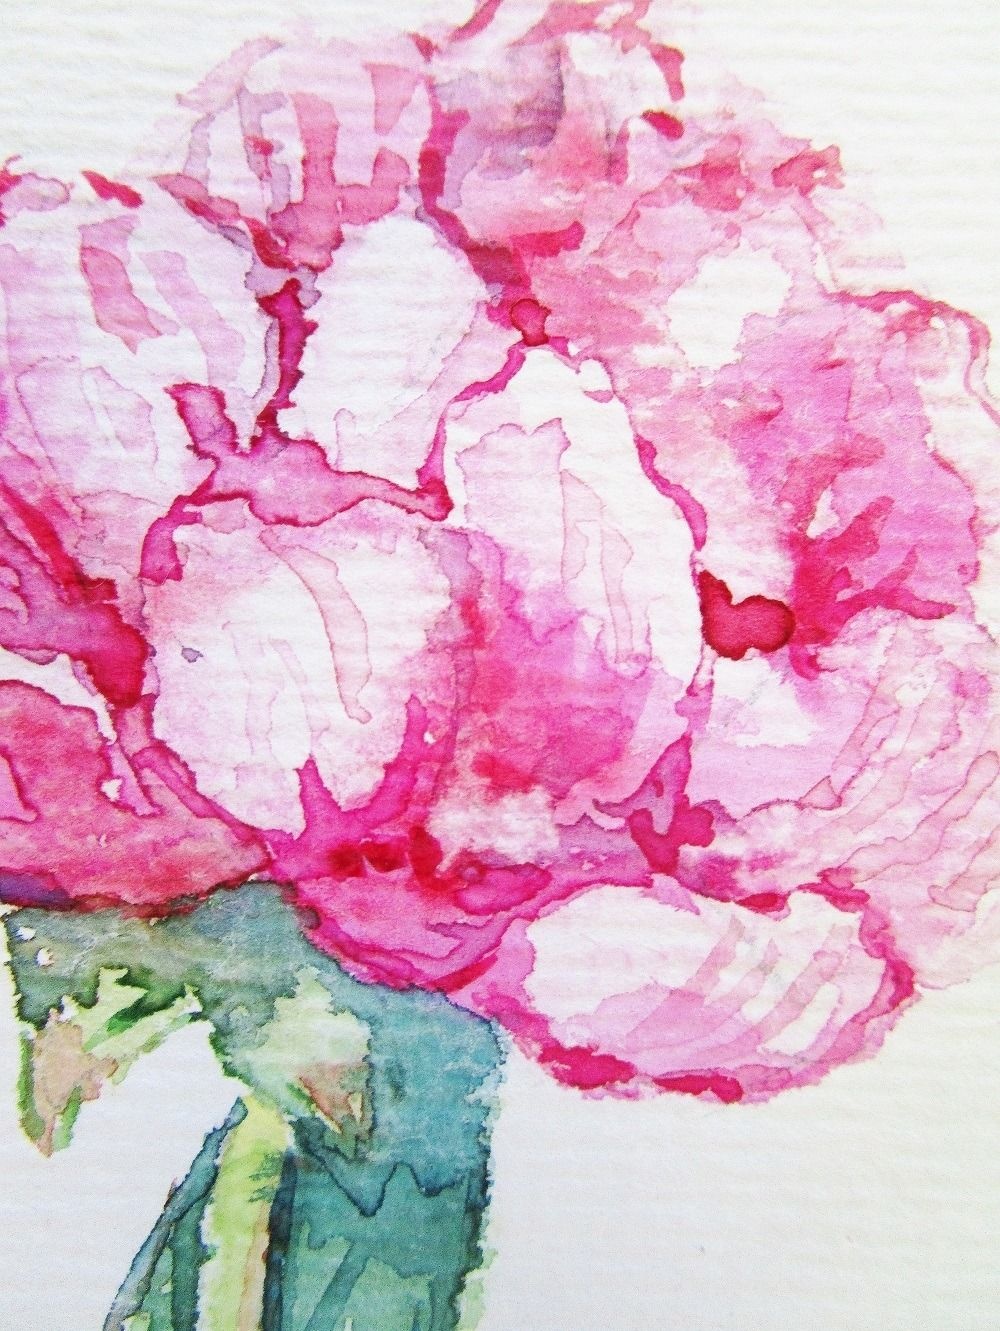 Aquarelle Fleur Carte Art Carte Postale Aquarelle Tableau